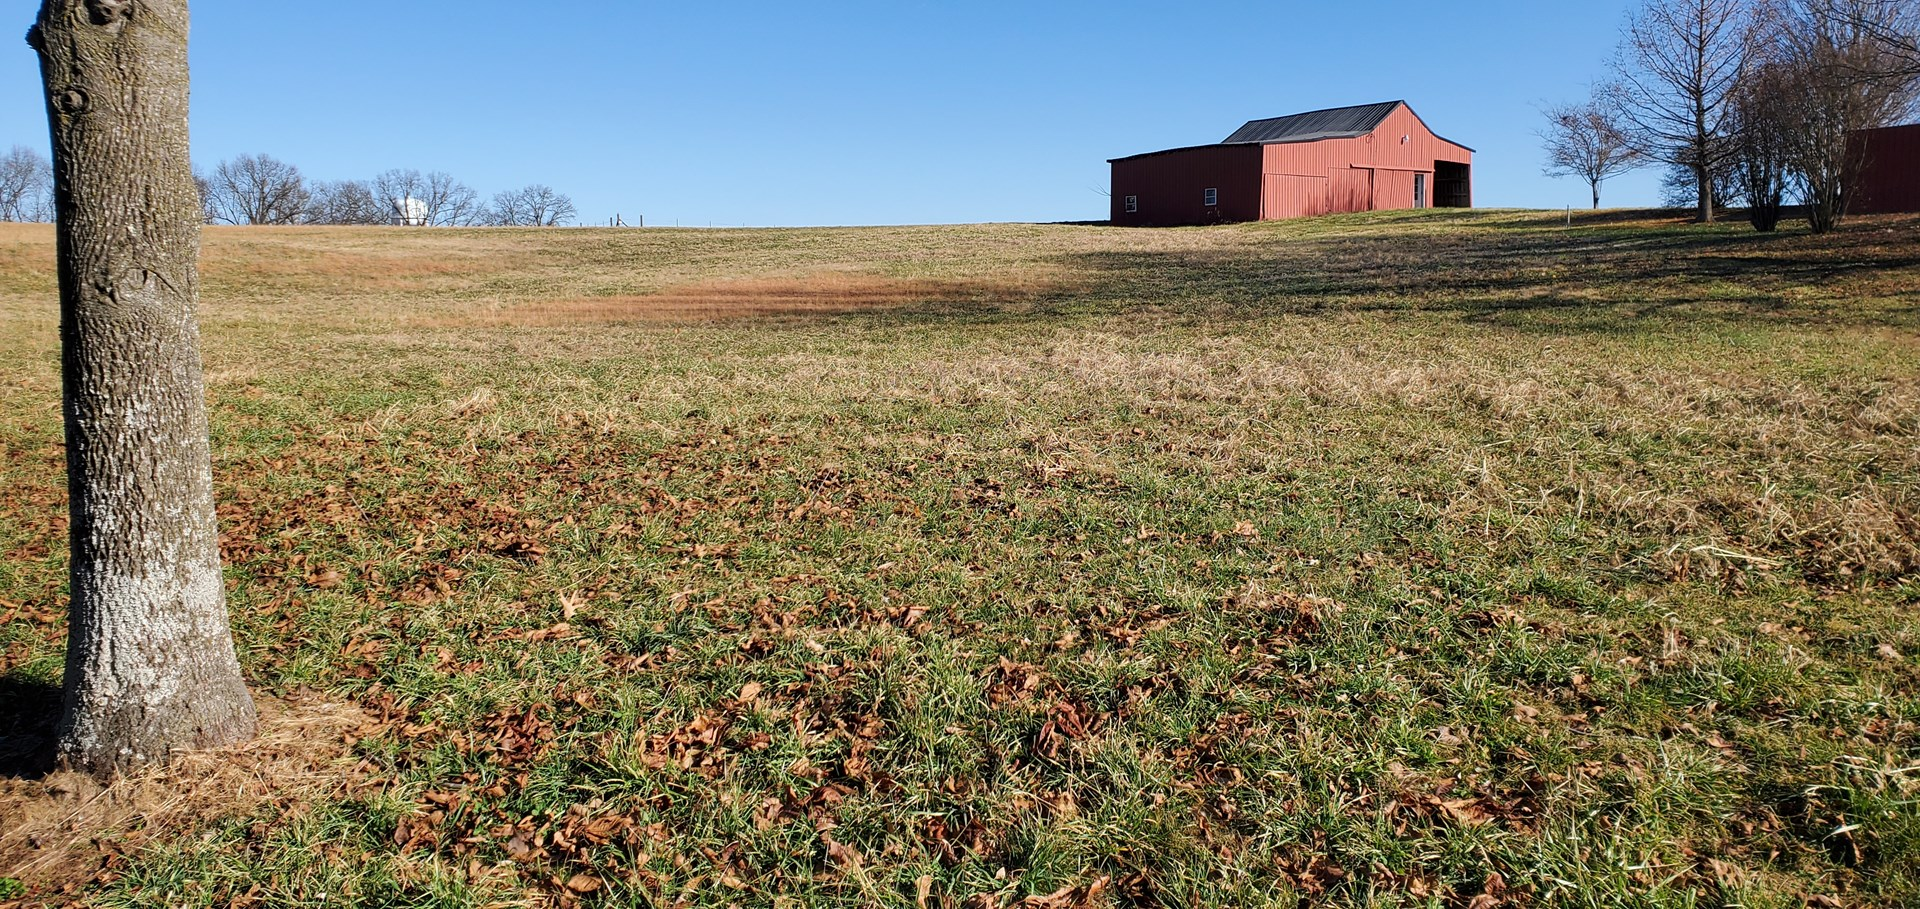 5.8 acre lot with barn for sale near Franklin, Ky.